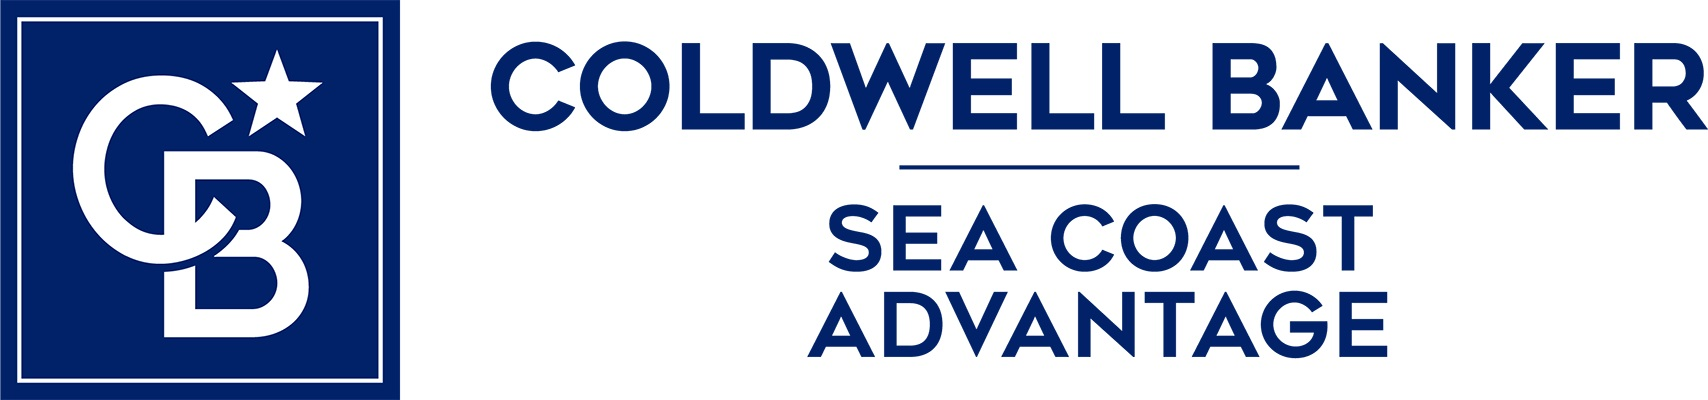 Ginger Harper Real Estate Group - Coldwell Banker Sea Coast Advantage